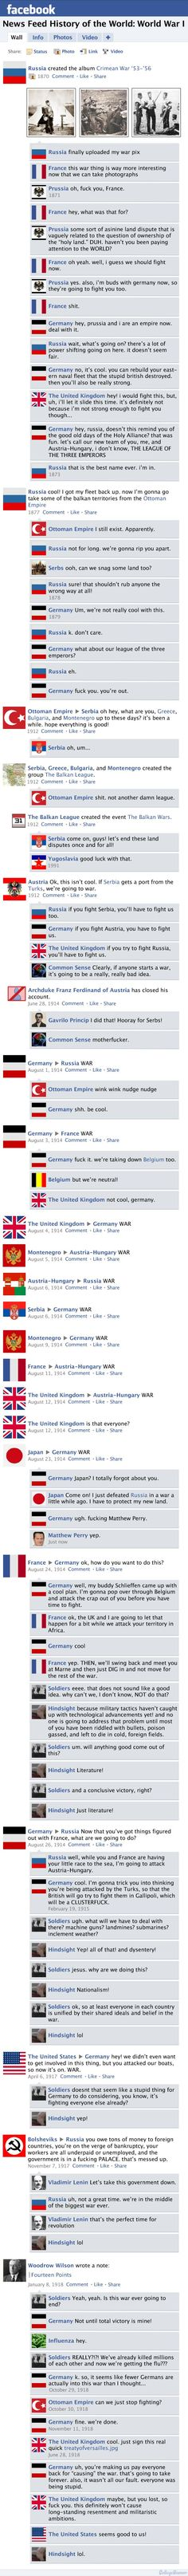 facebook news feed history of the world: WWI to WWII